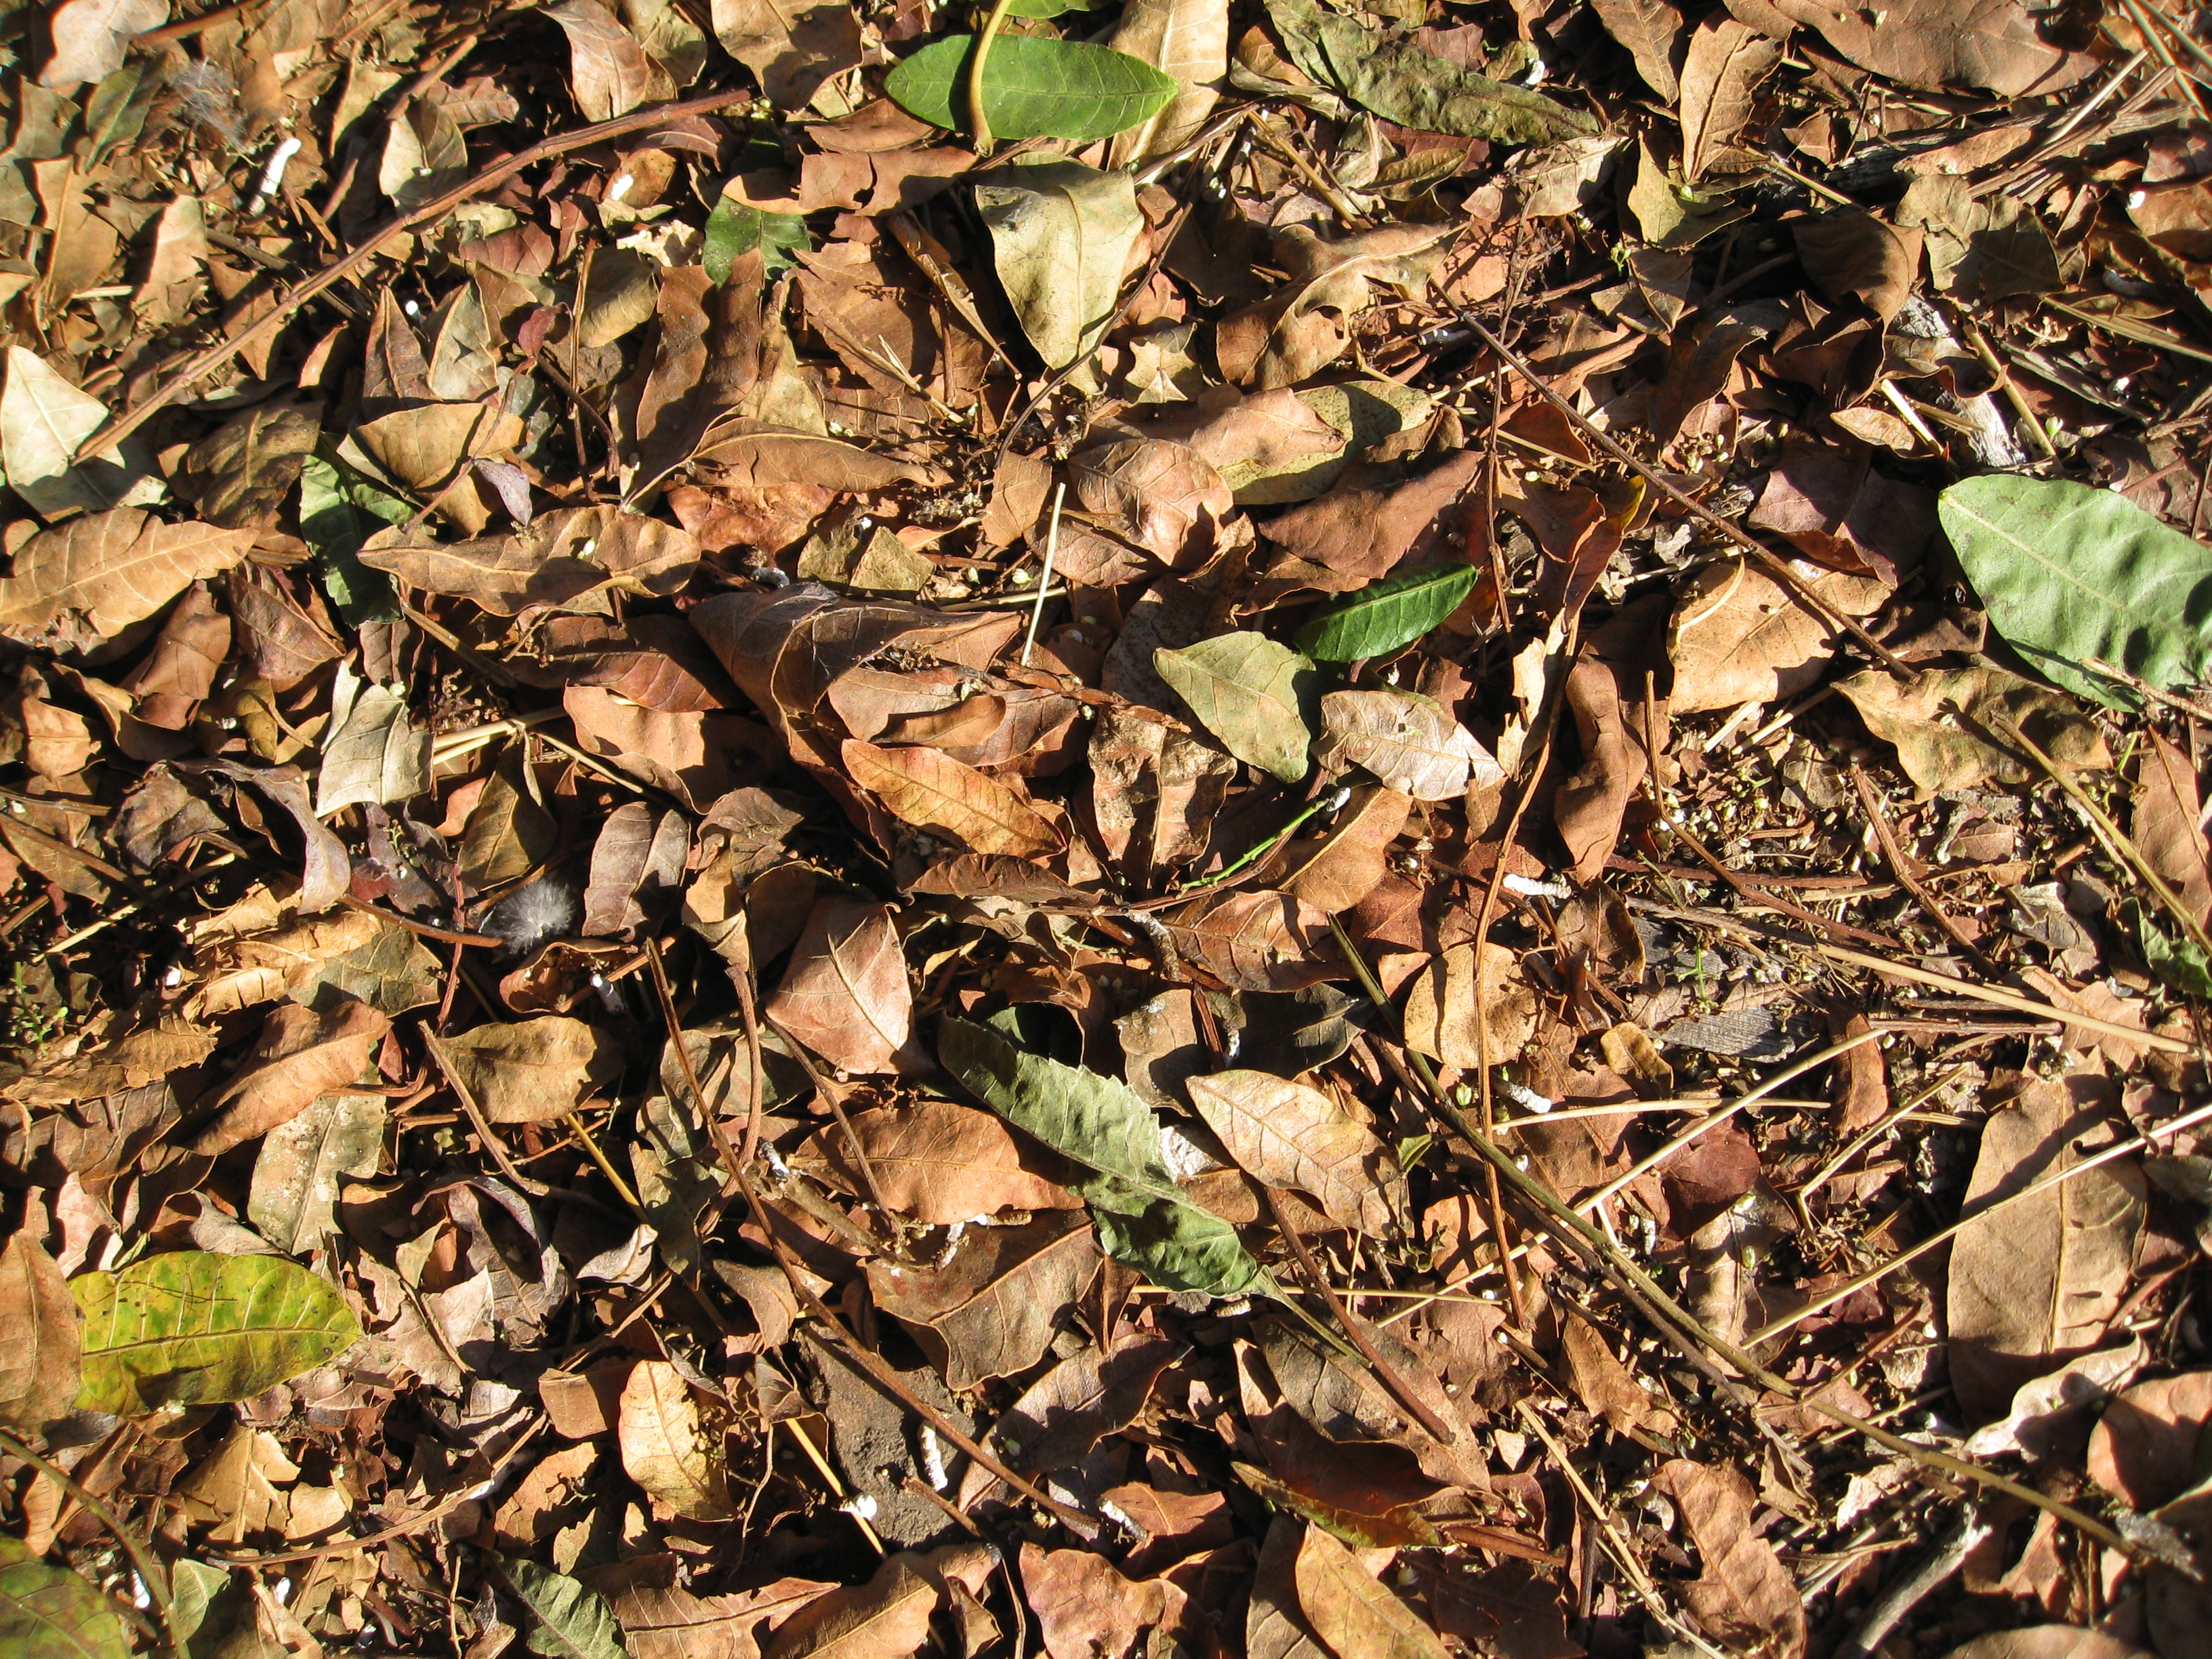 Dried tree leaves make good compost material